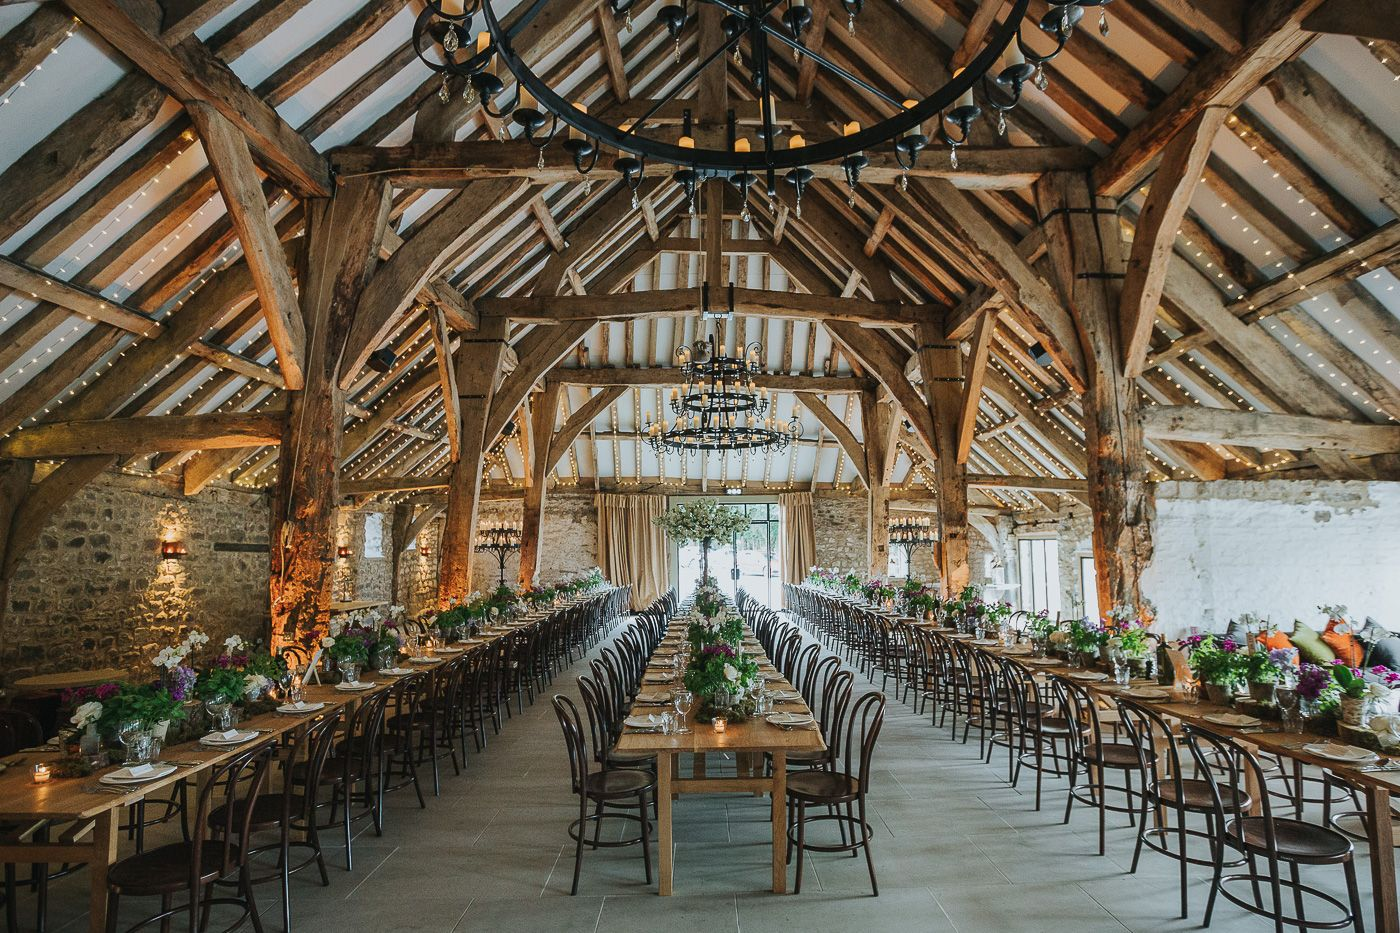 Pin by Lacey Perdomo on The dream | Wedding venues ...